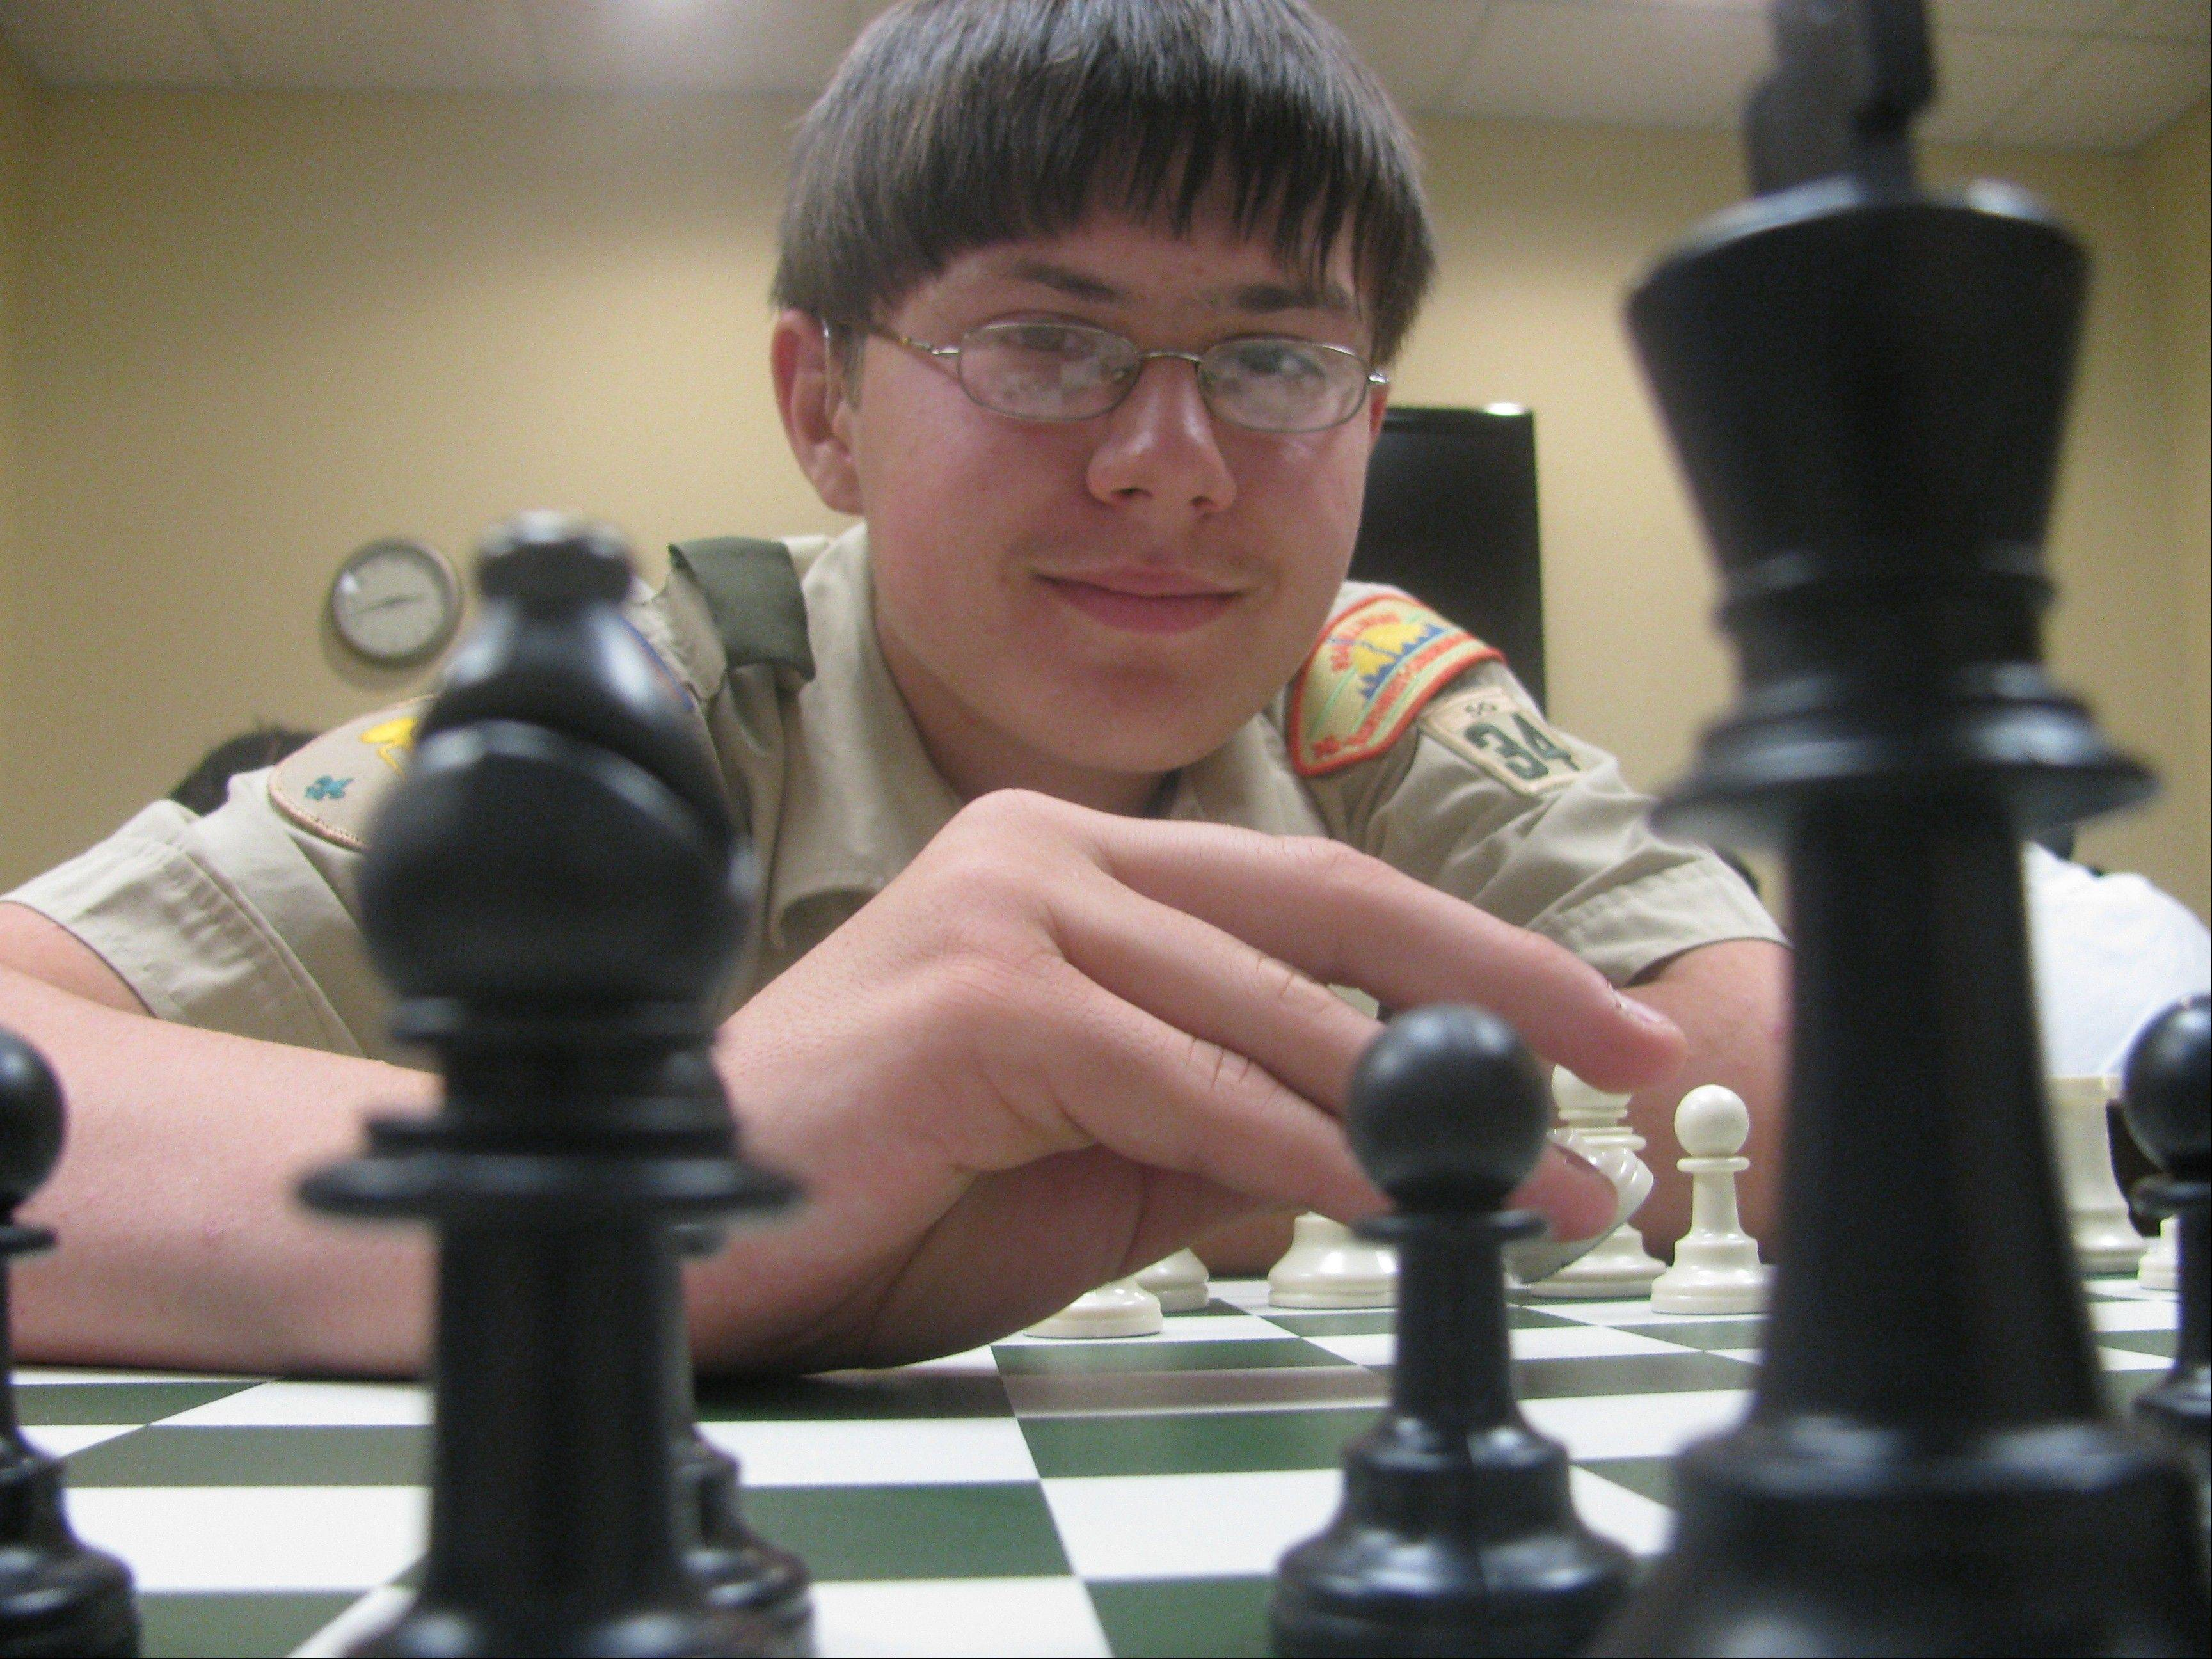 Eagle Scout Matthew J. Wiewel with chess pieces.